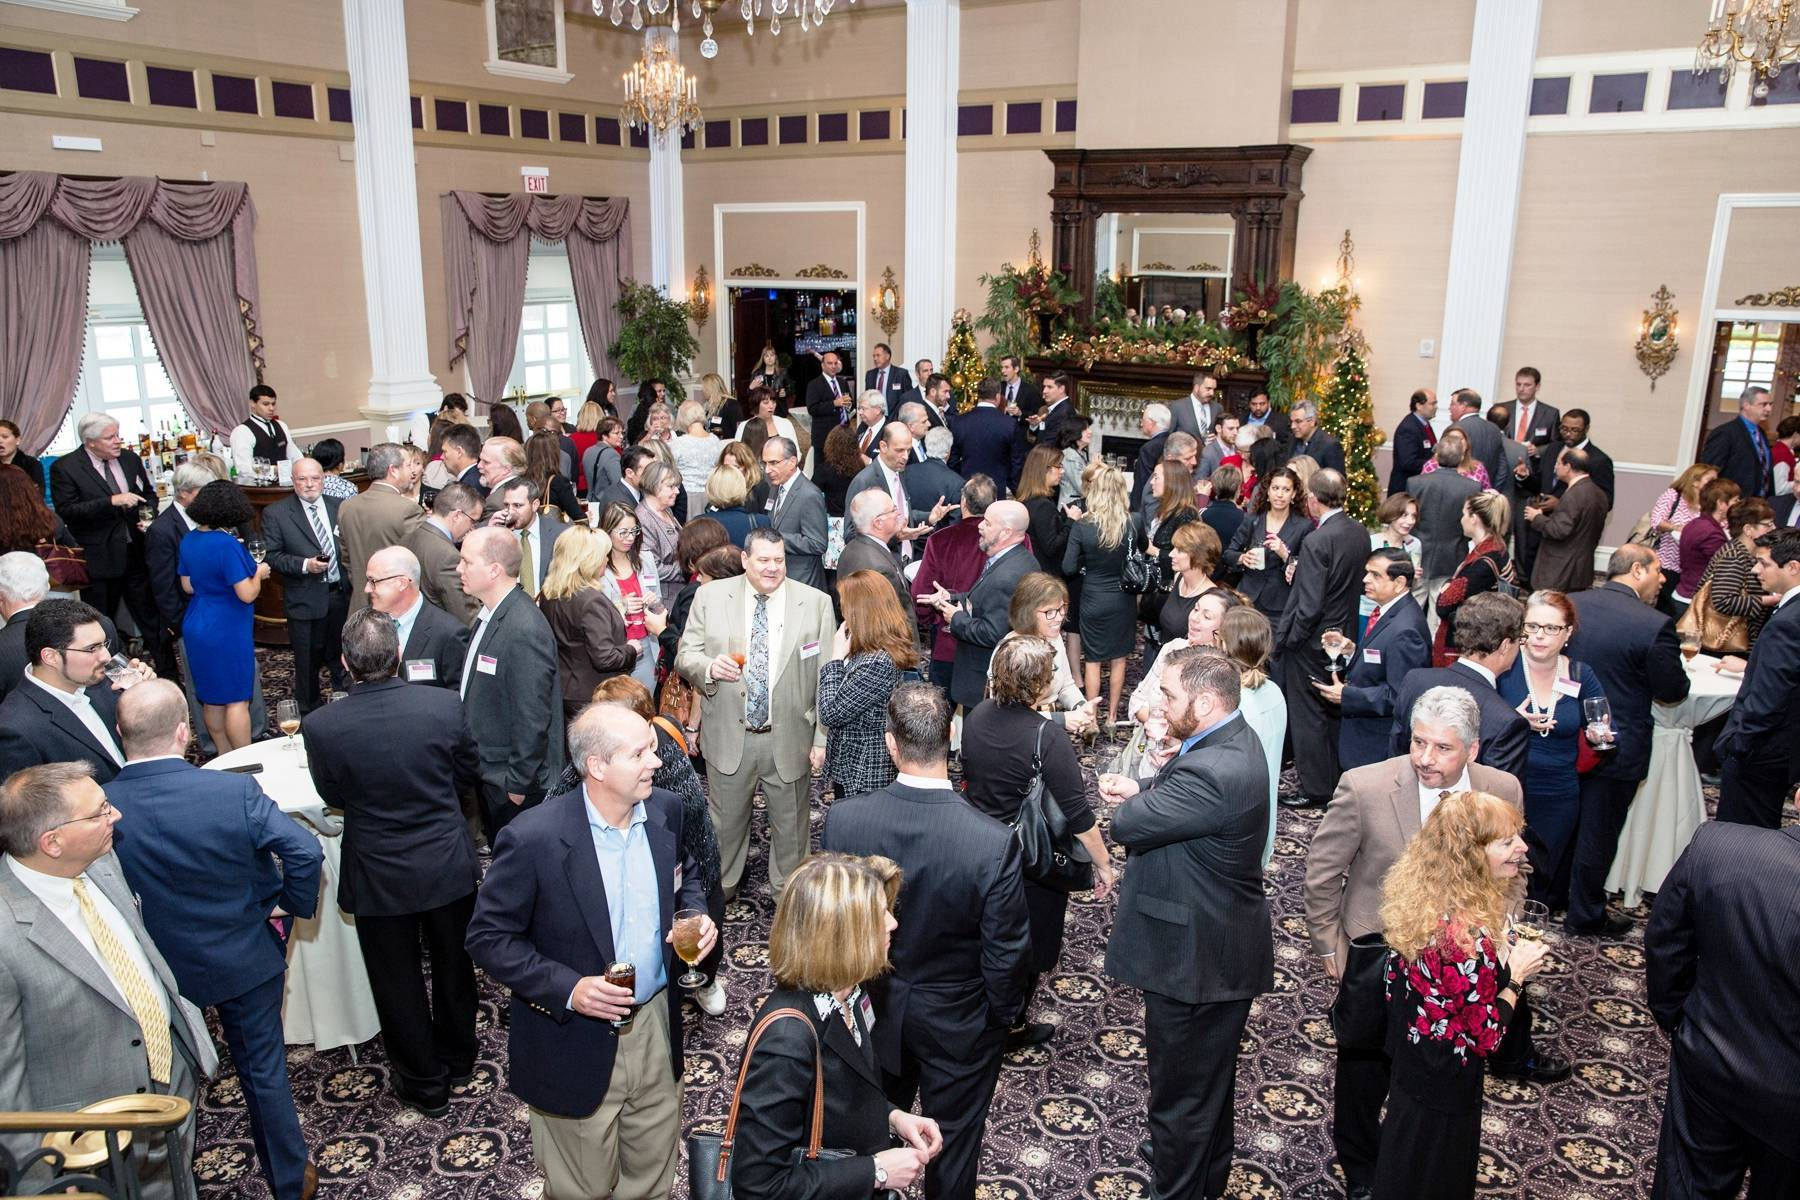 New jersey somerset county flagtown - The Somerset County Business Partnership Annual Meeting The Largest Business Gathering In Somerset County Is Scheduled For Monday Dec